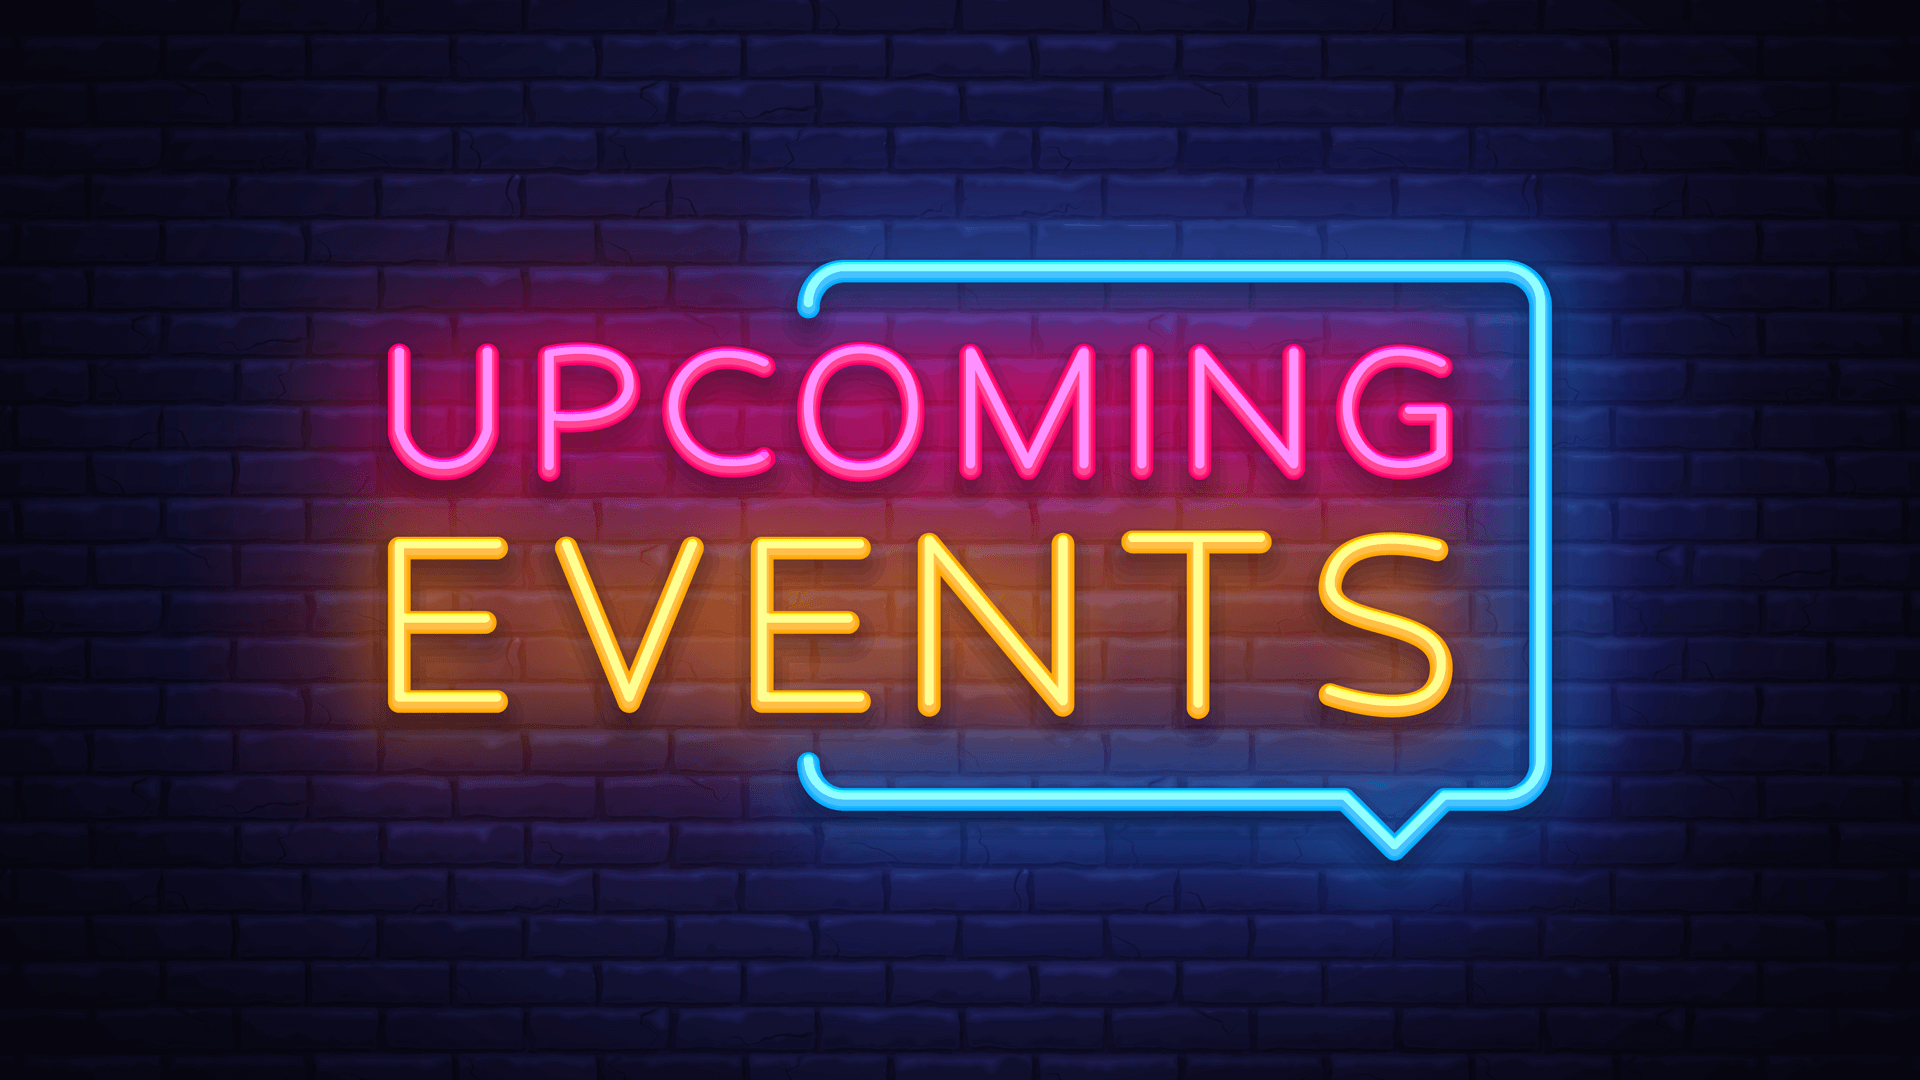 Events in times of Corona